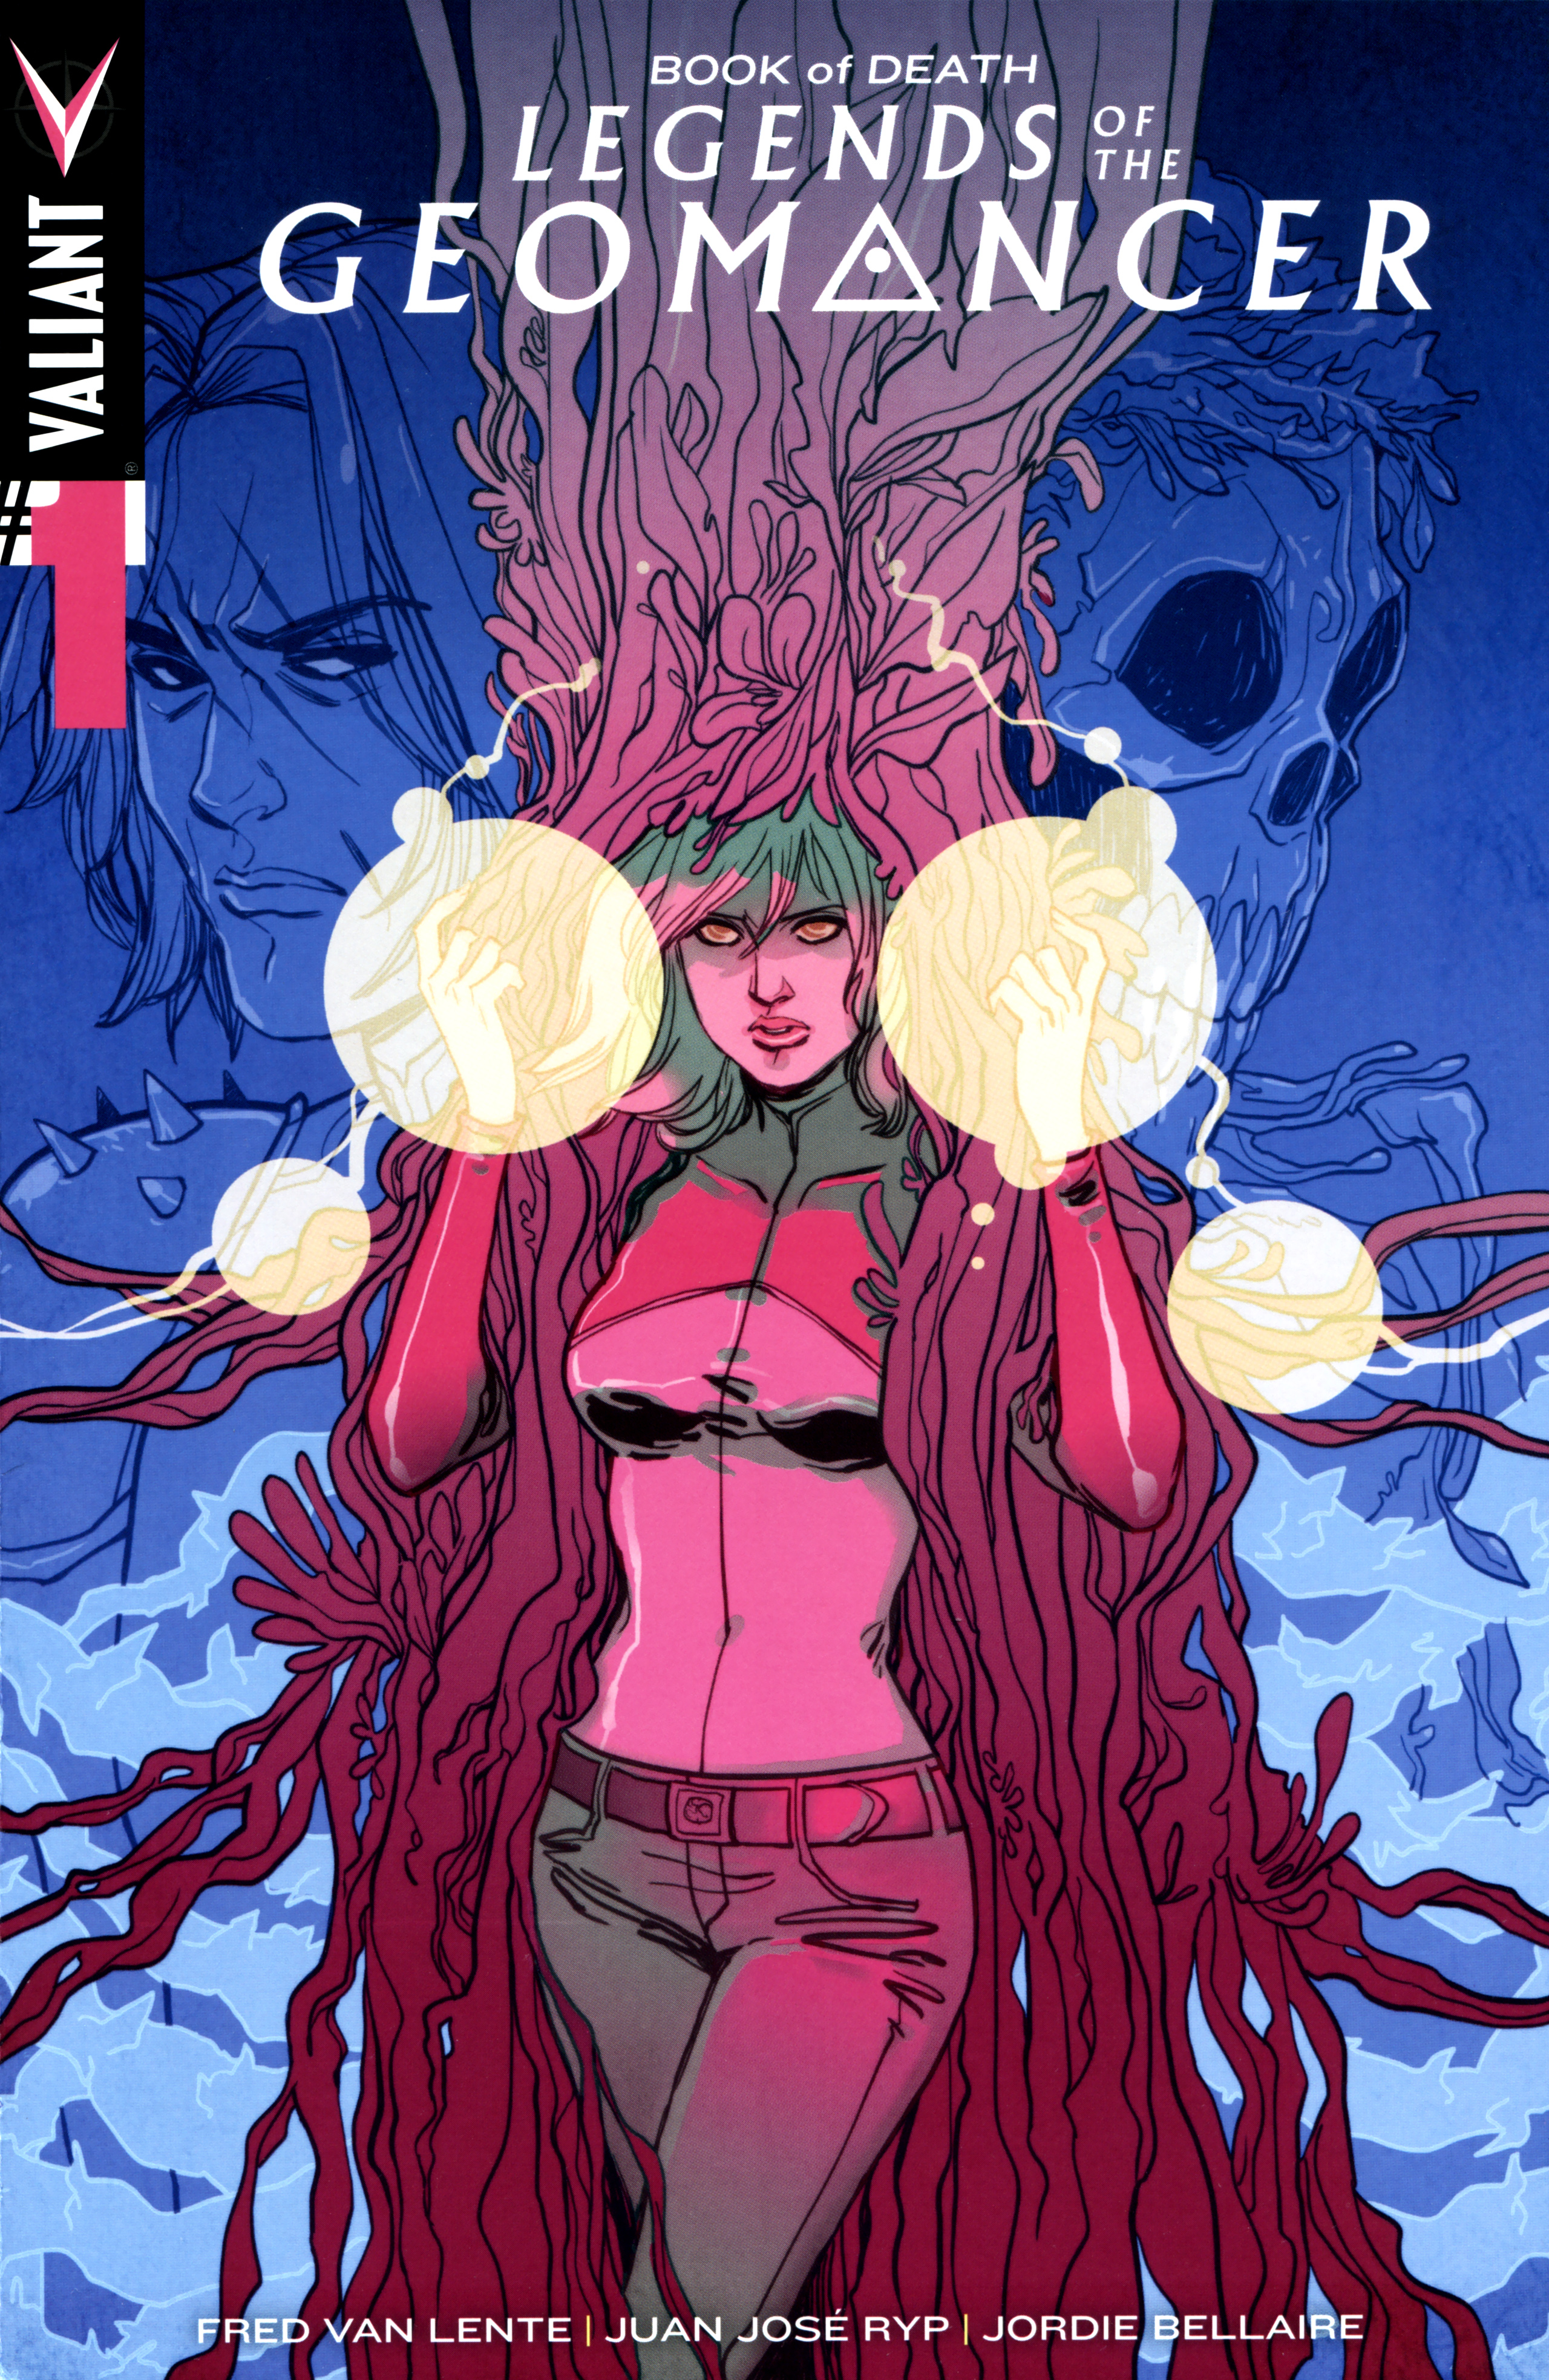 Book of Death Legends of the Geomancer Issue 1